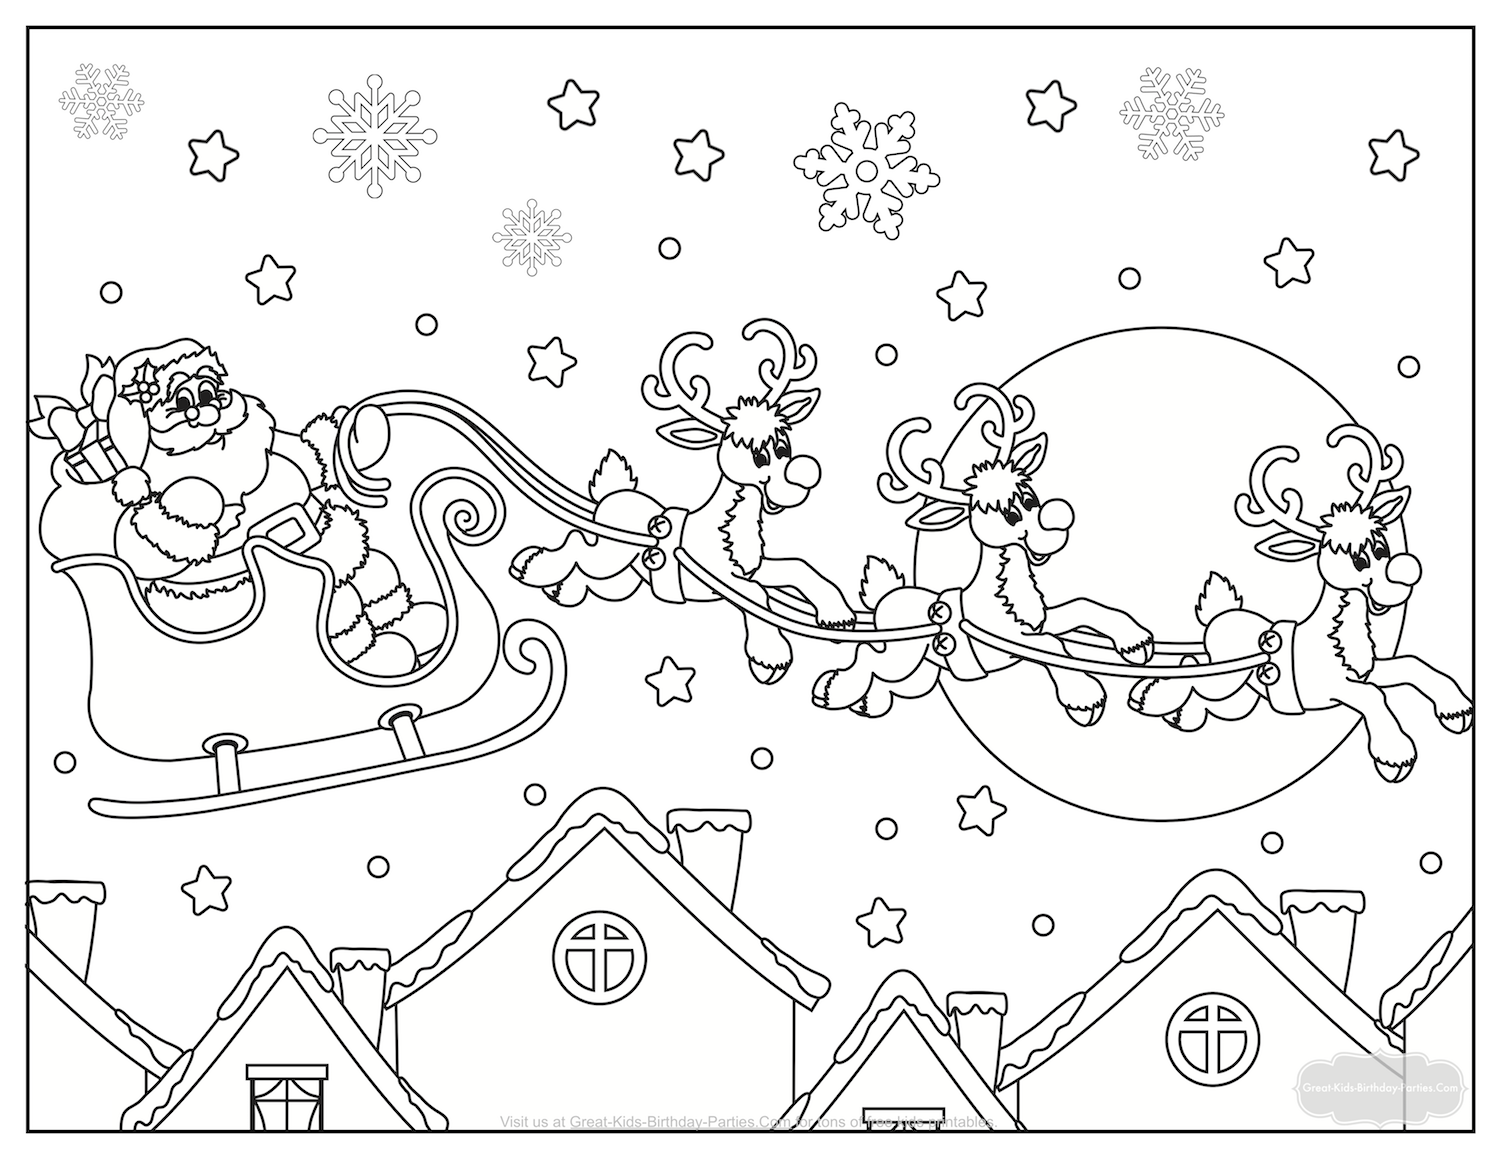 Cute Snowman Coloring Pages Ideas For Toddlers Free Coloring Sheets Snowman Coloring Pages Christmas Coloring Sheets Printable Christmas Coloring Pages